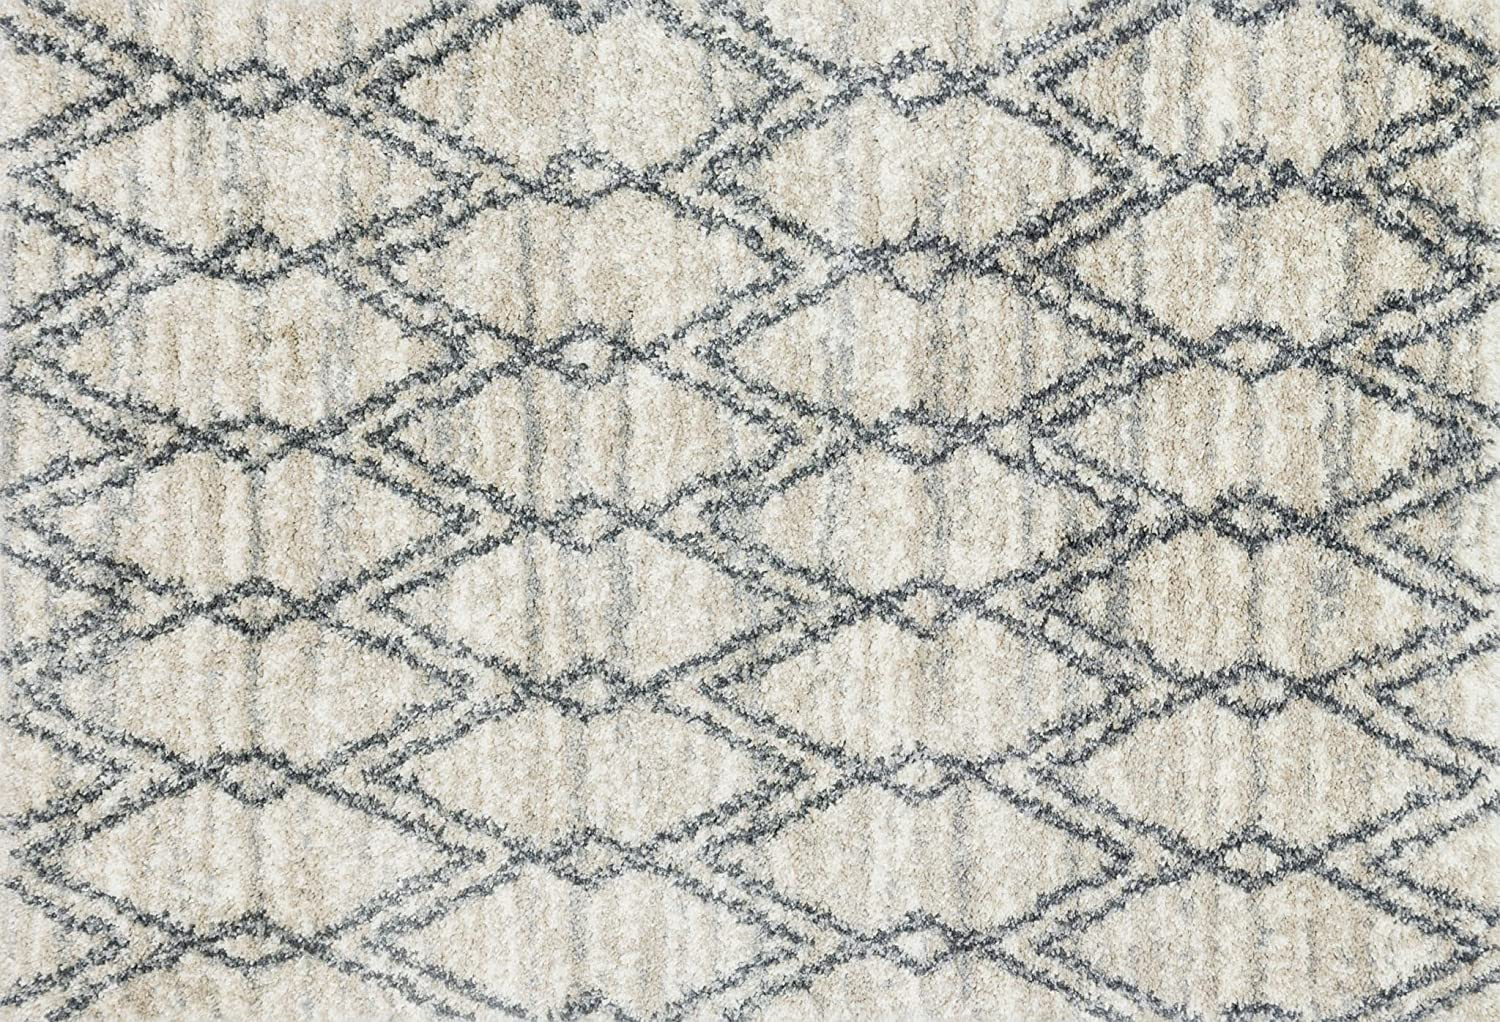 Loloi (LOLAH) QNCYQC-04SAGT Quincy QC-04 Indoor Area Rugs 2'-3' x 12' Sand/Graphite